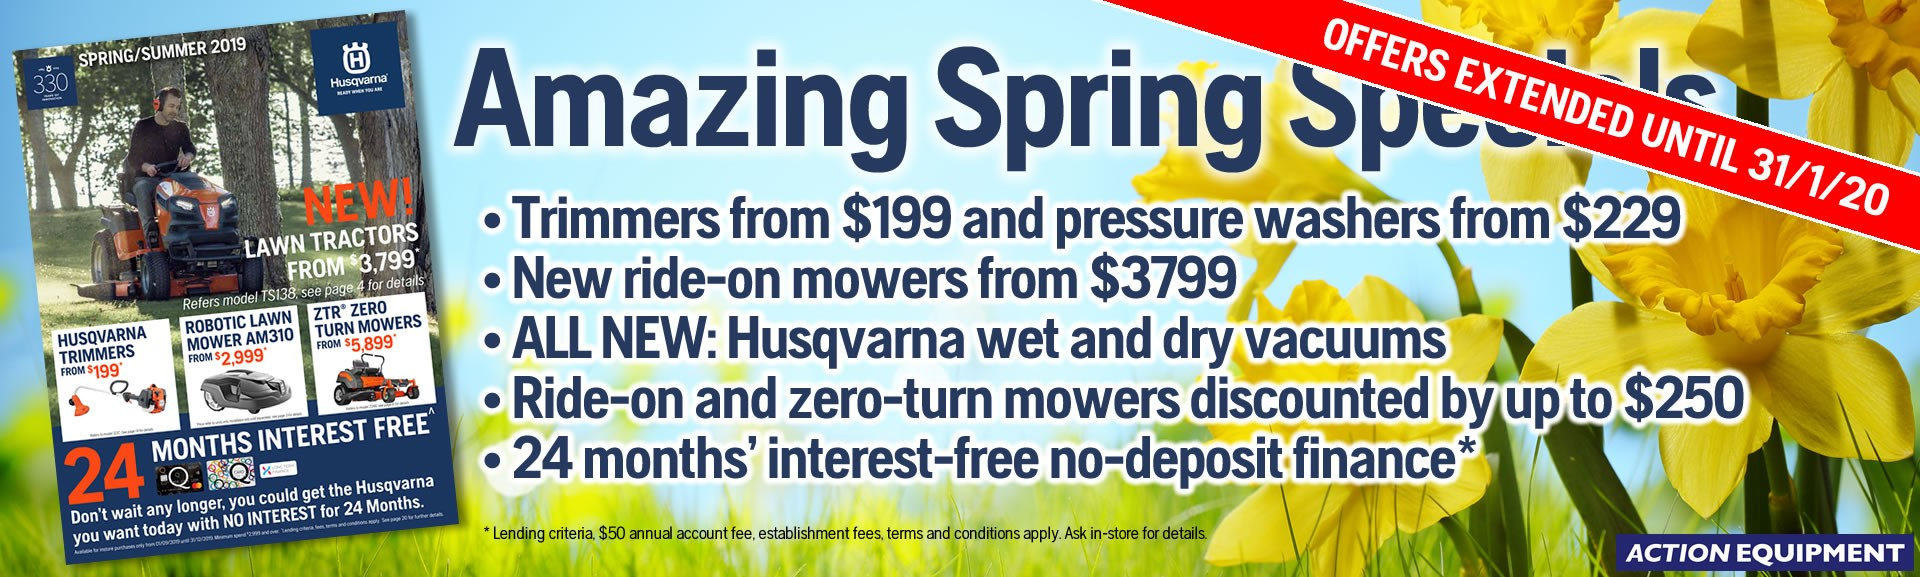 Husqvarna Spring/Summer Deals 2019-2020